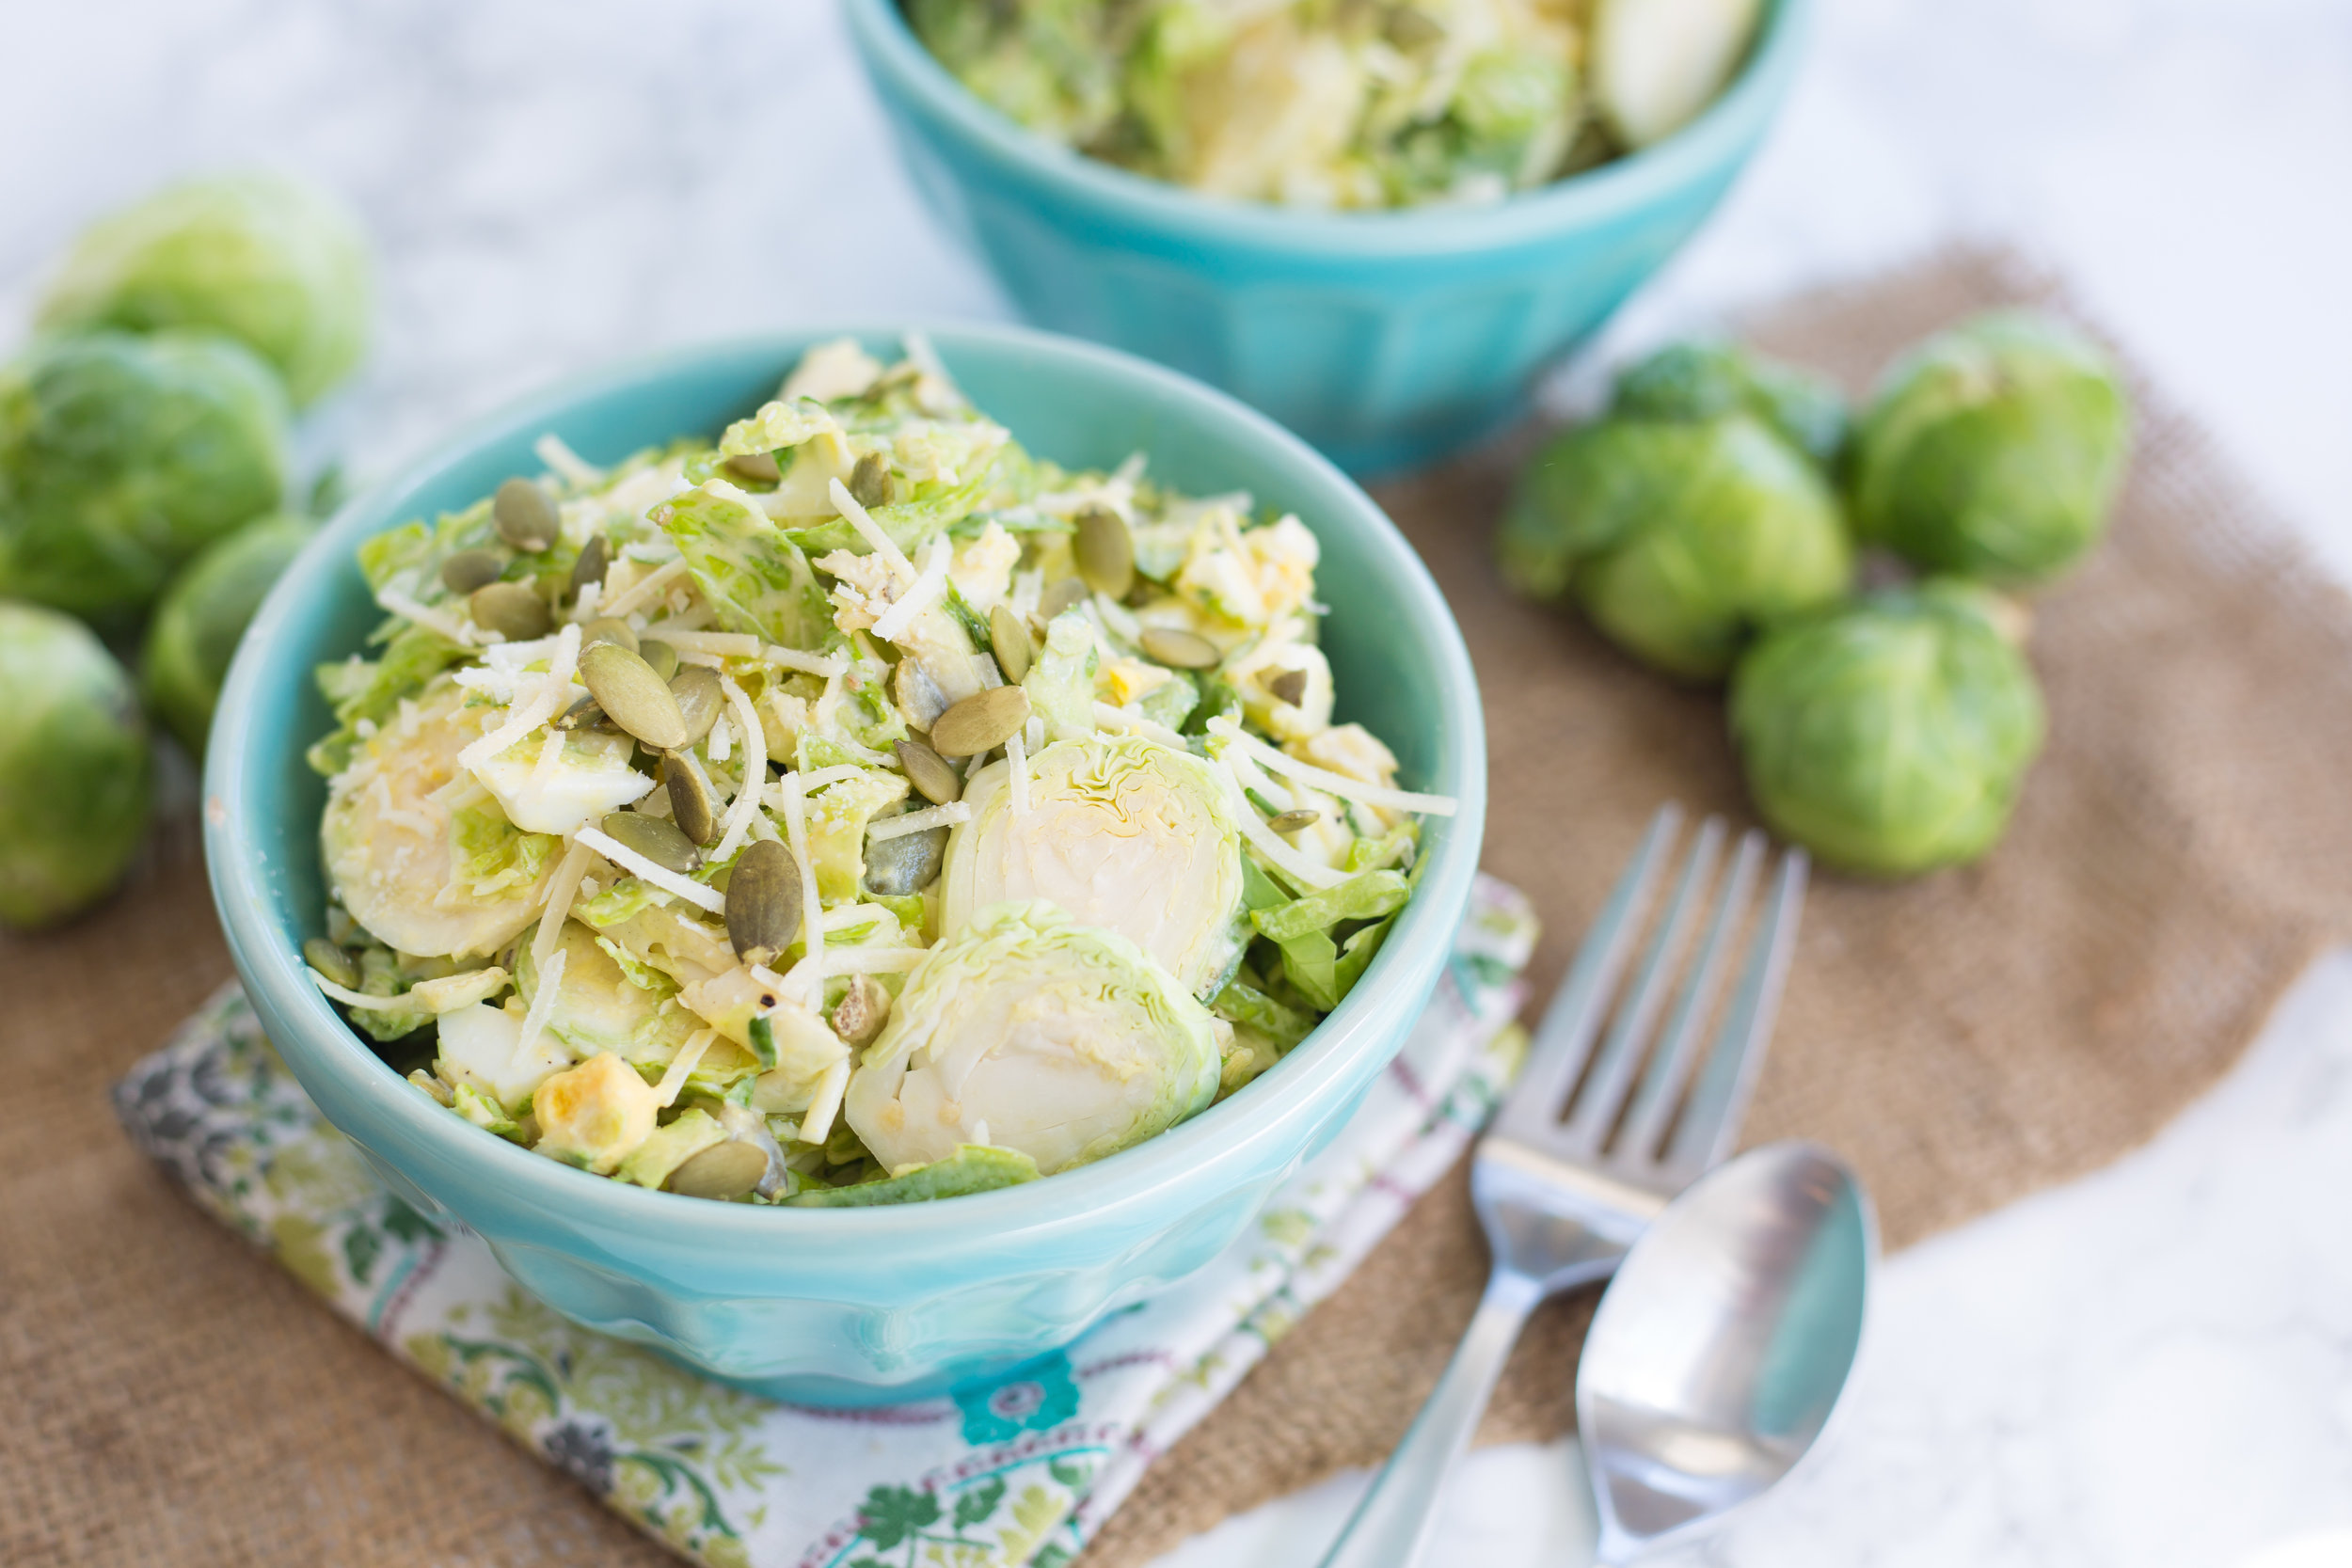 Brussels Sprouts Salad, Healthy Recipes, Whole30, Paleo Recipes, Summertime, Define Fettle, Gluten Free, Grain Free, Dairy Free, Primal